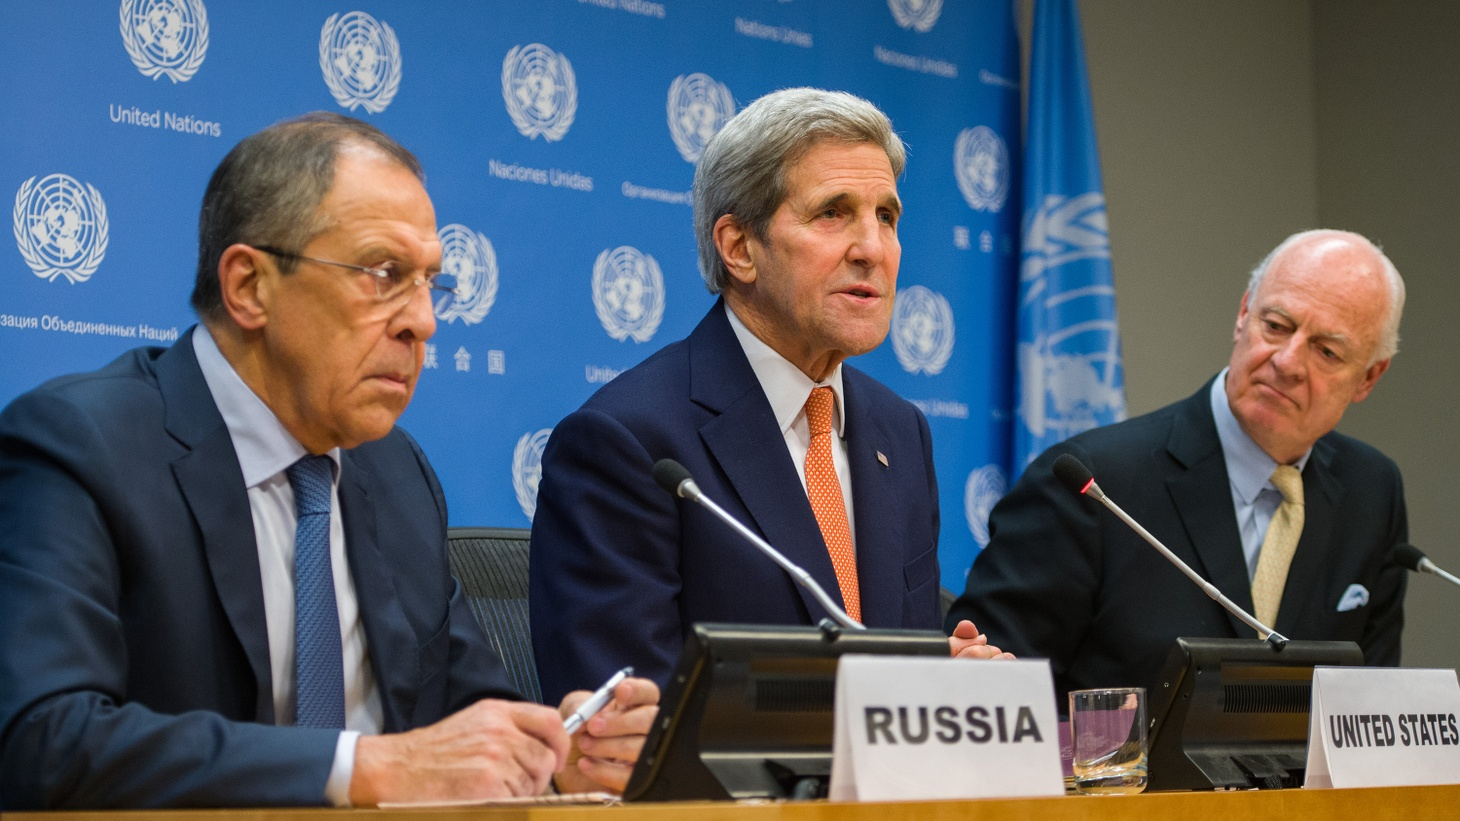 As the flow of refugees from Syria's civil war continues, peace talks have been delayed again. The Obama Administration is taking heat for not using military action against the Assad regime, which is supported by Russia. We look at the options.